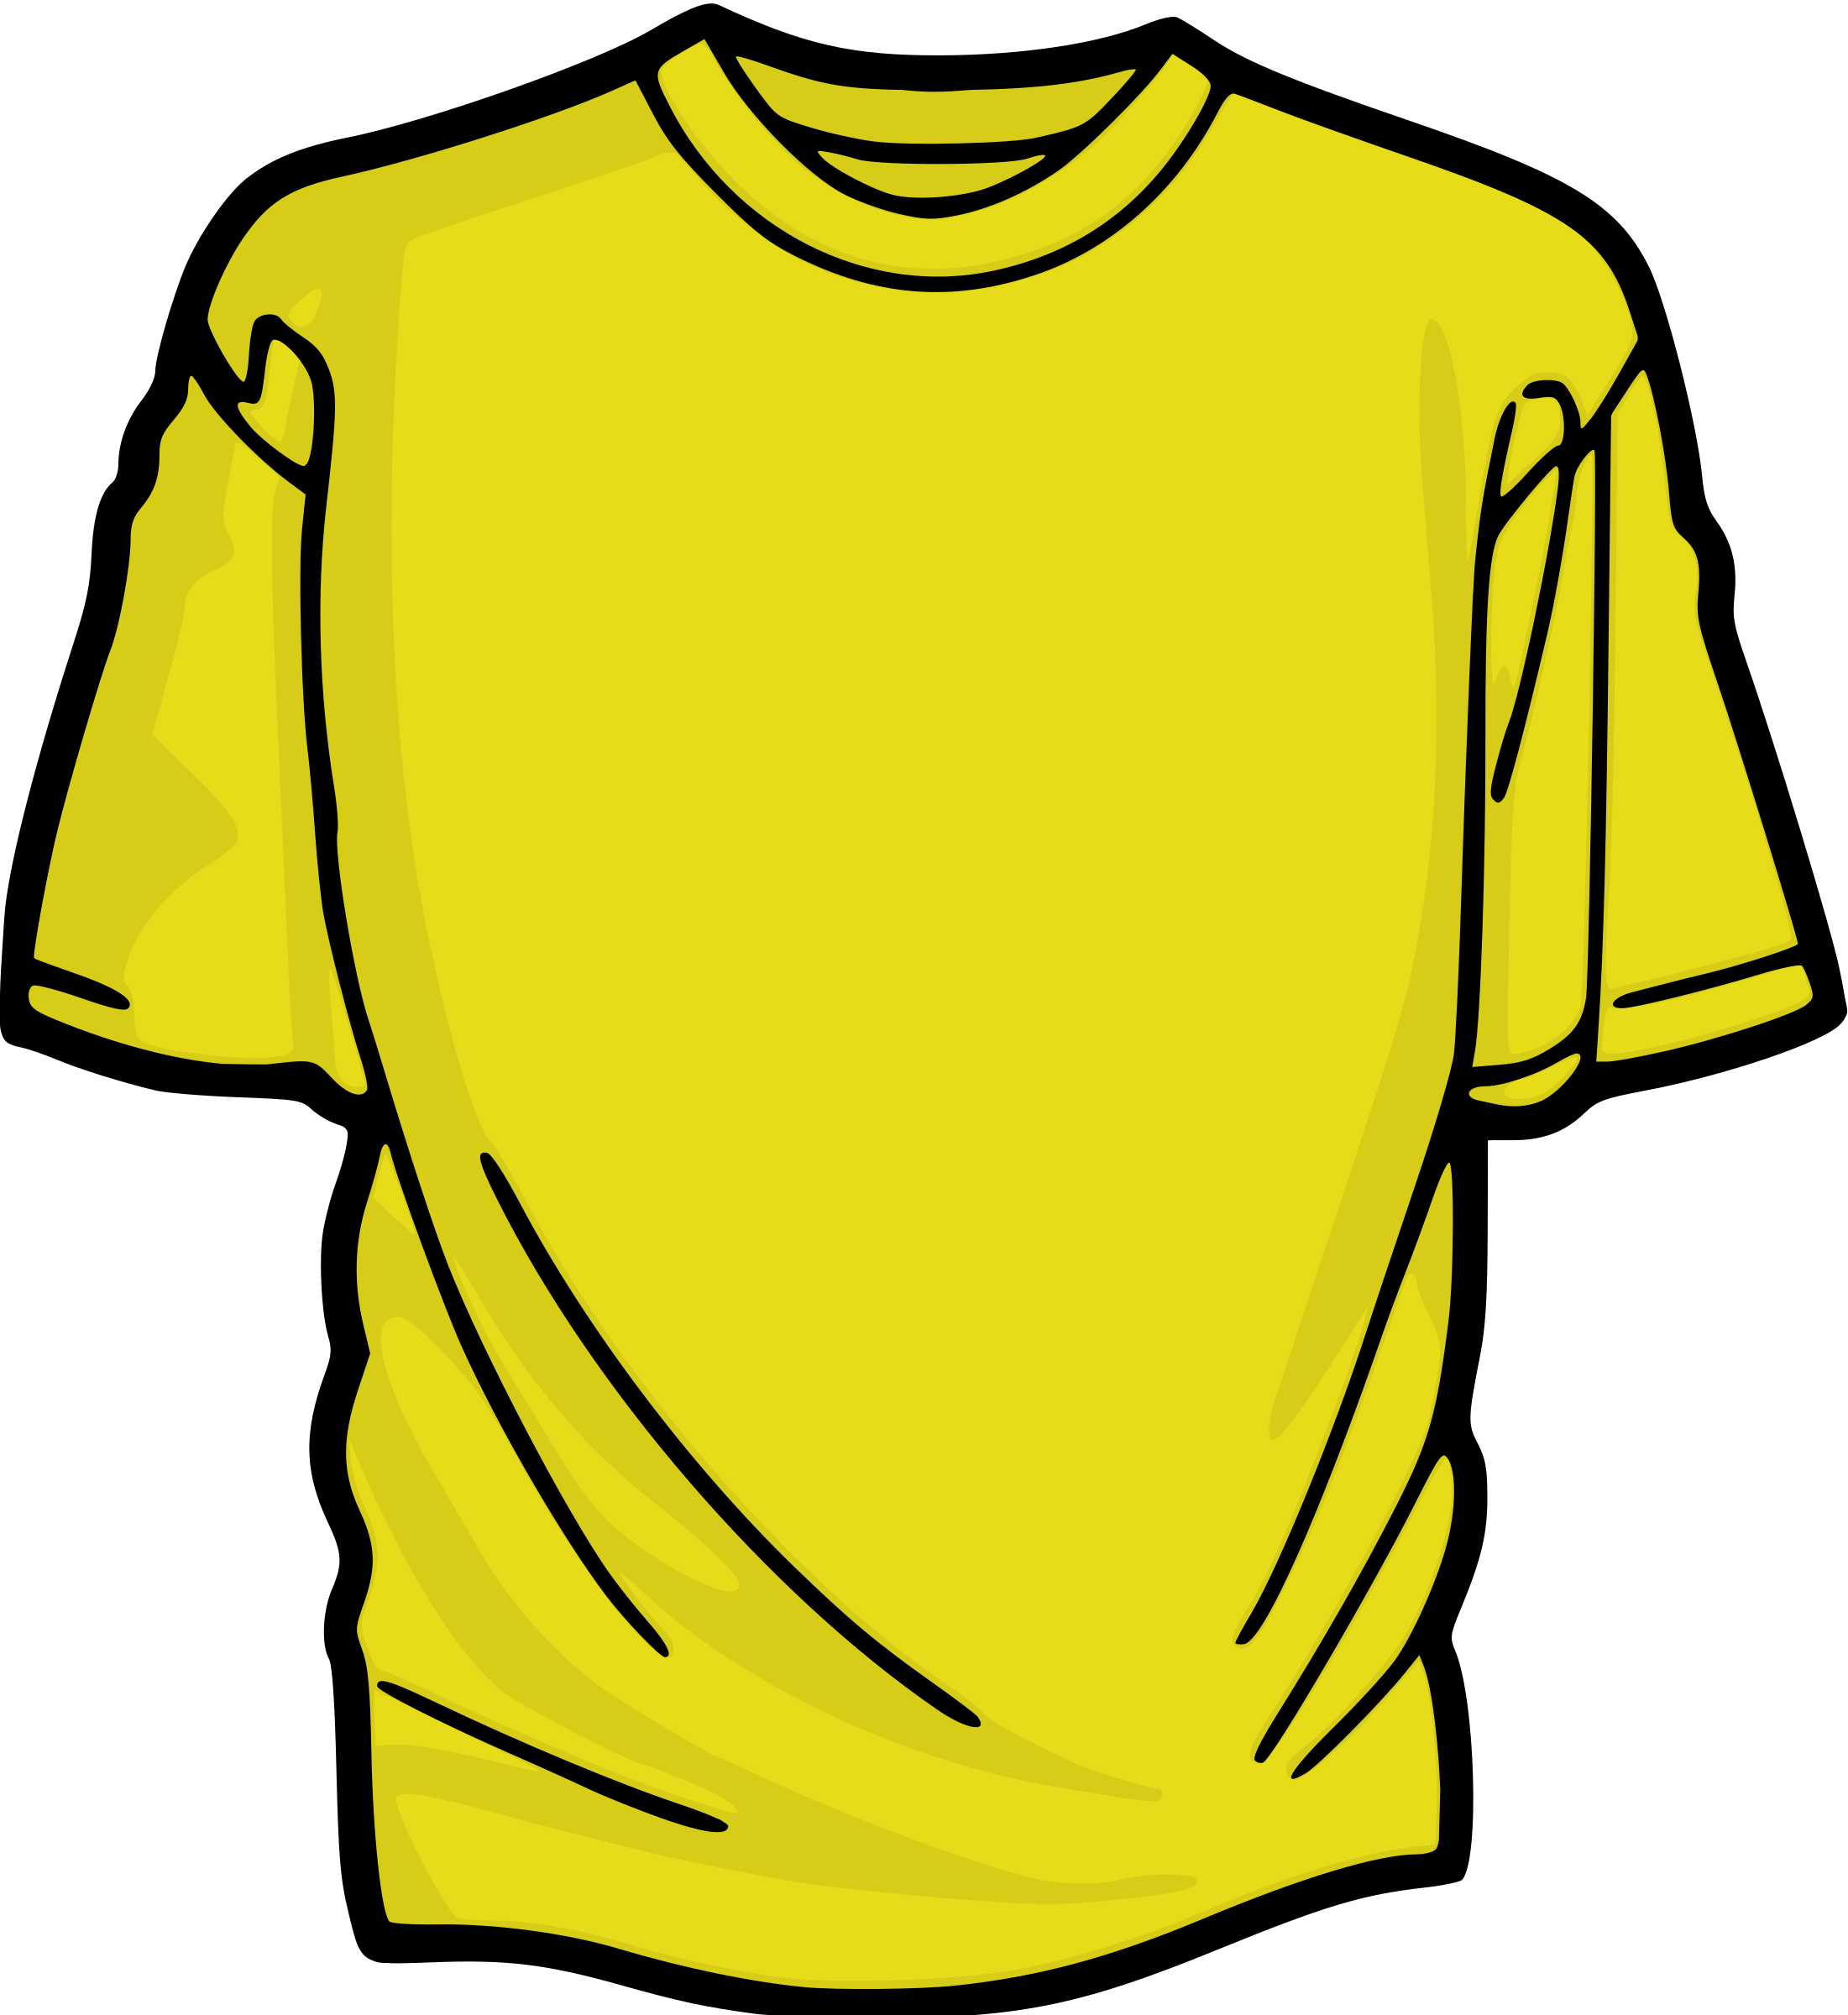 Clothes clipart png. Yellow t shirt big